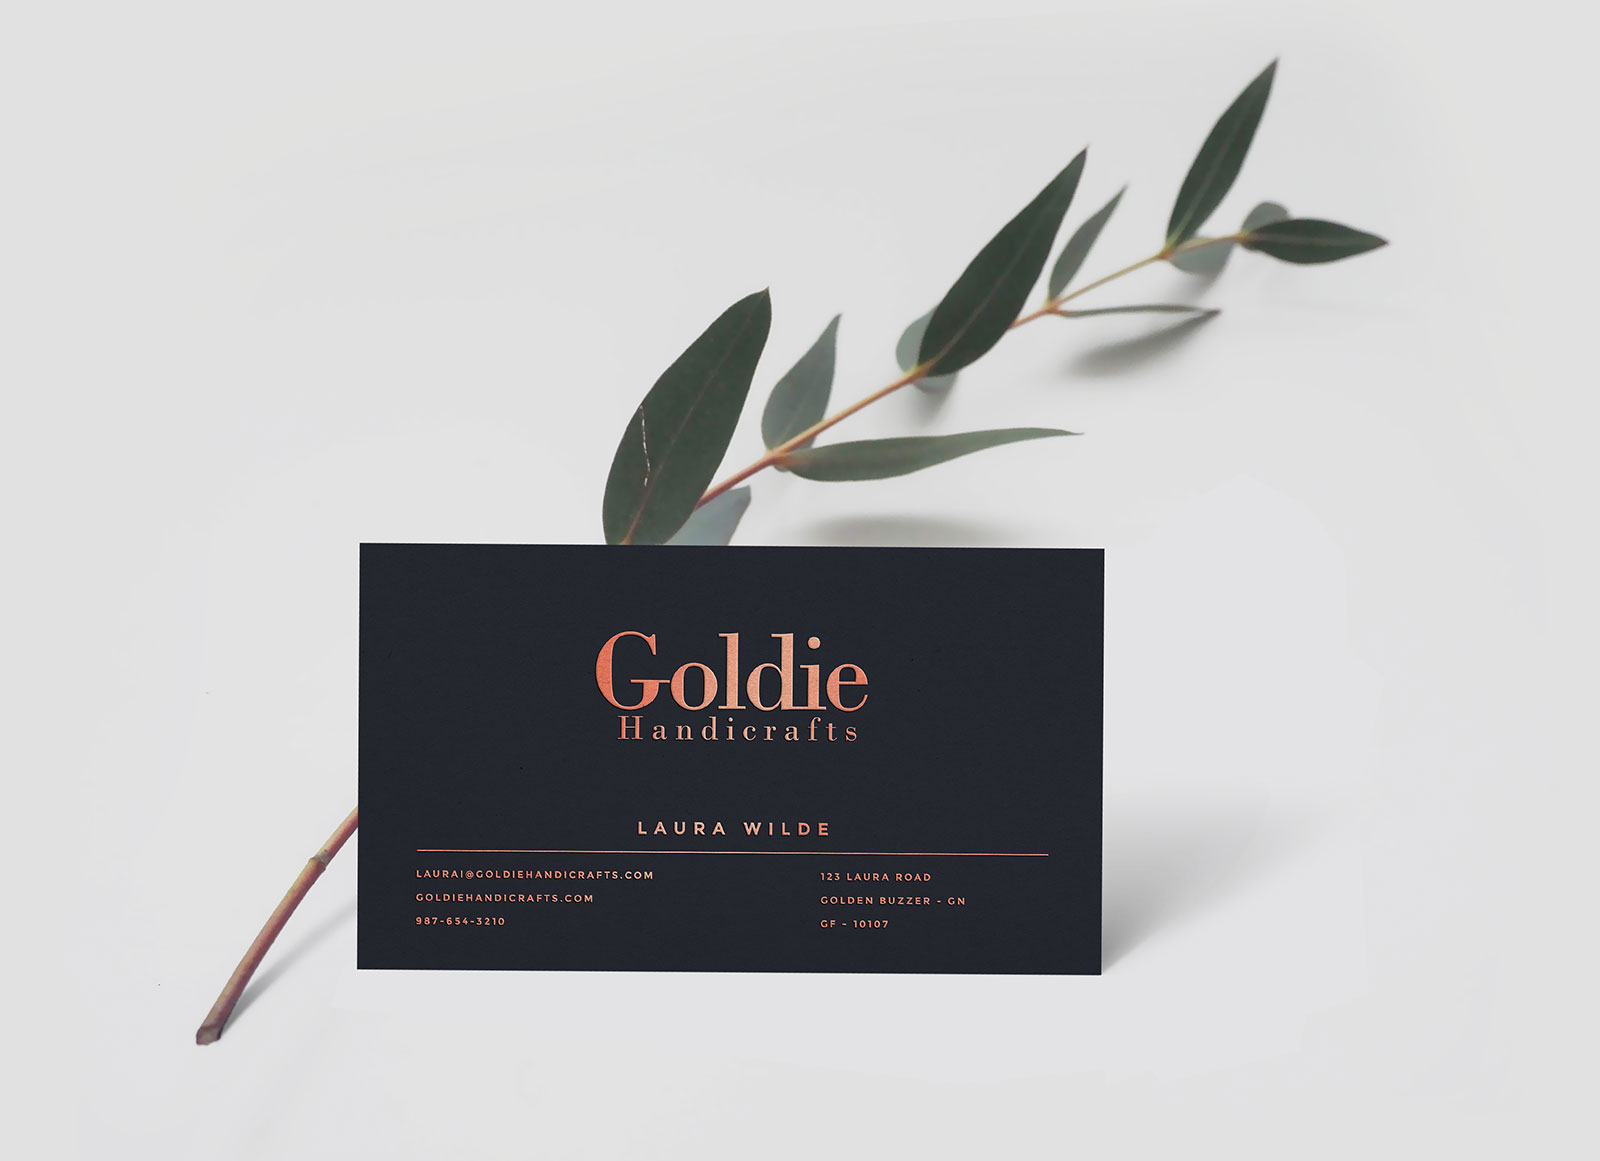 Free realistic black business card mockup psd good mockups free realistic black business card mockup psd reheart Gallery